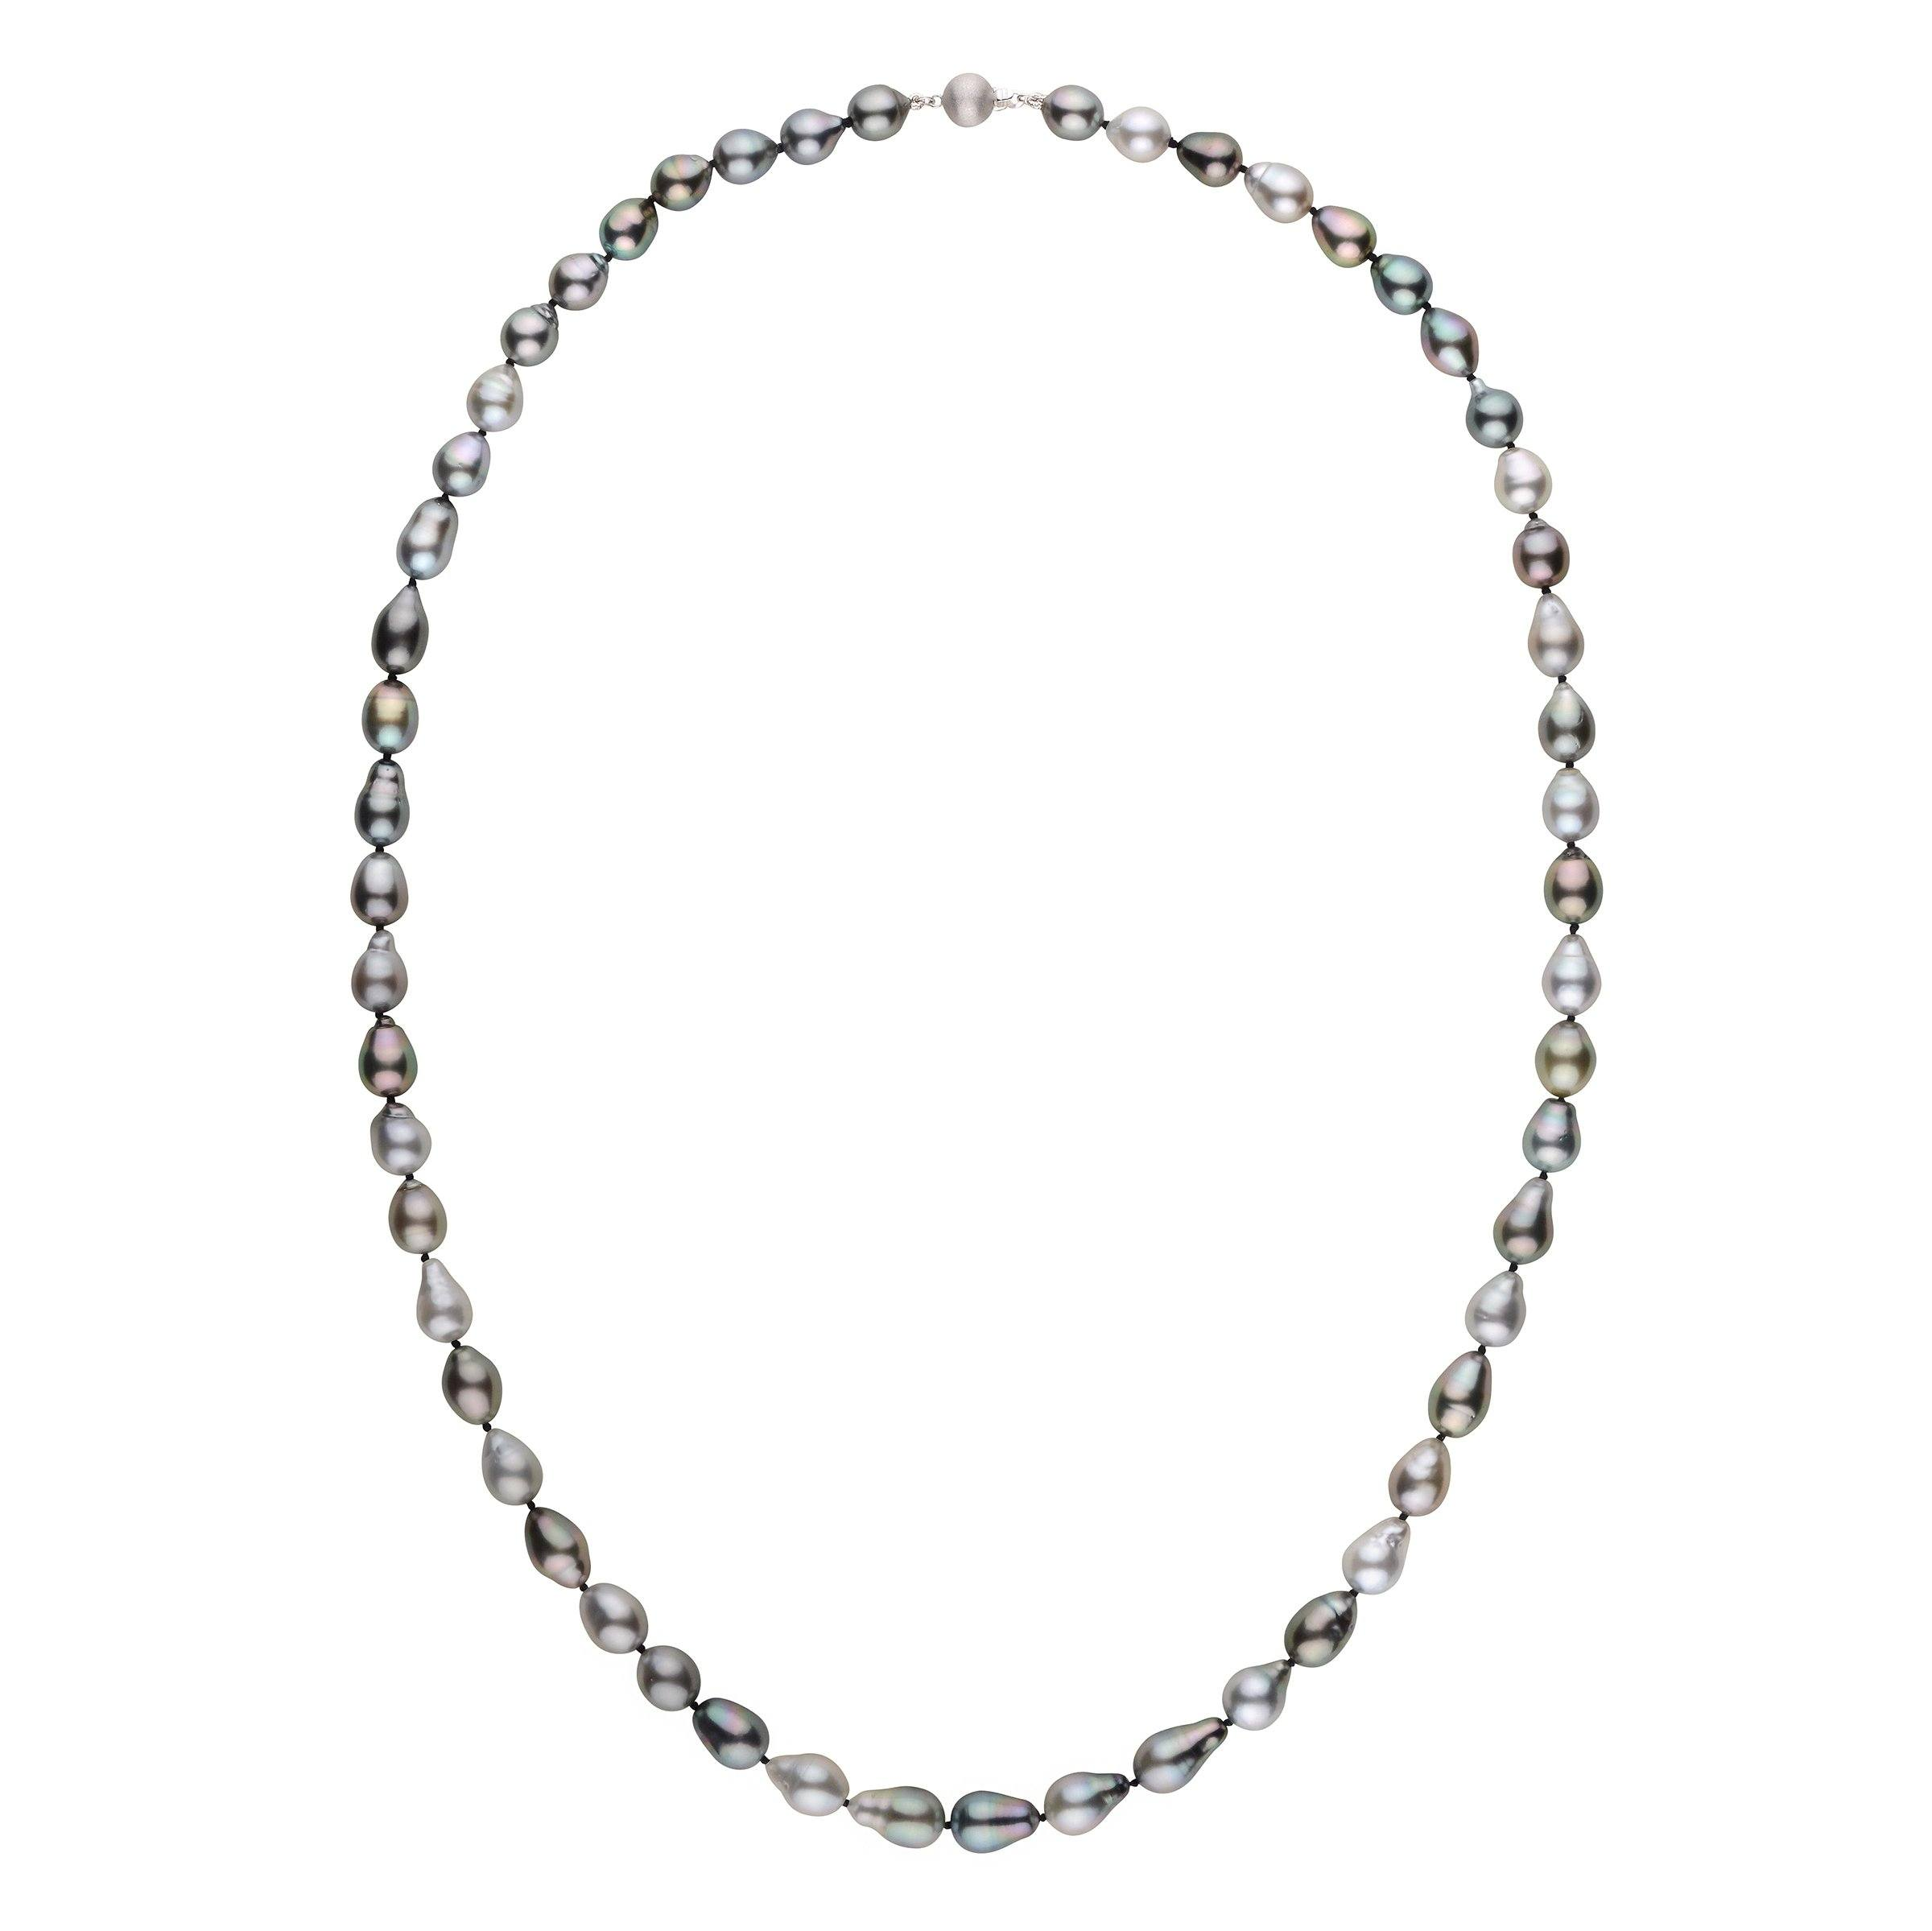 26 inch 8.0-9.0 mm AAA Drop Multicolor Tahitian Pearl Necklace